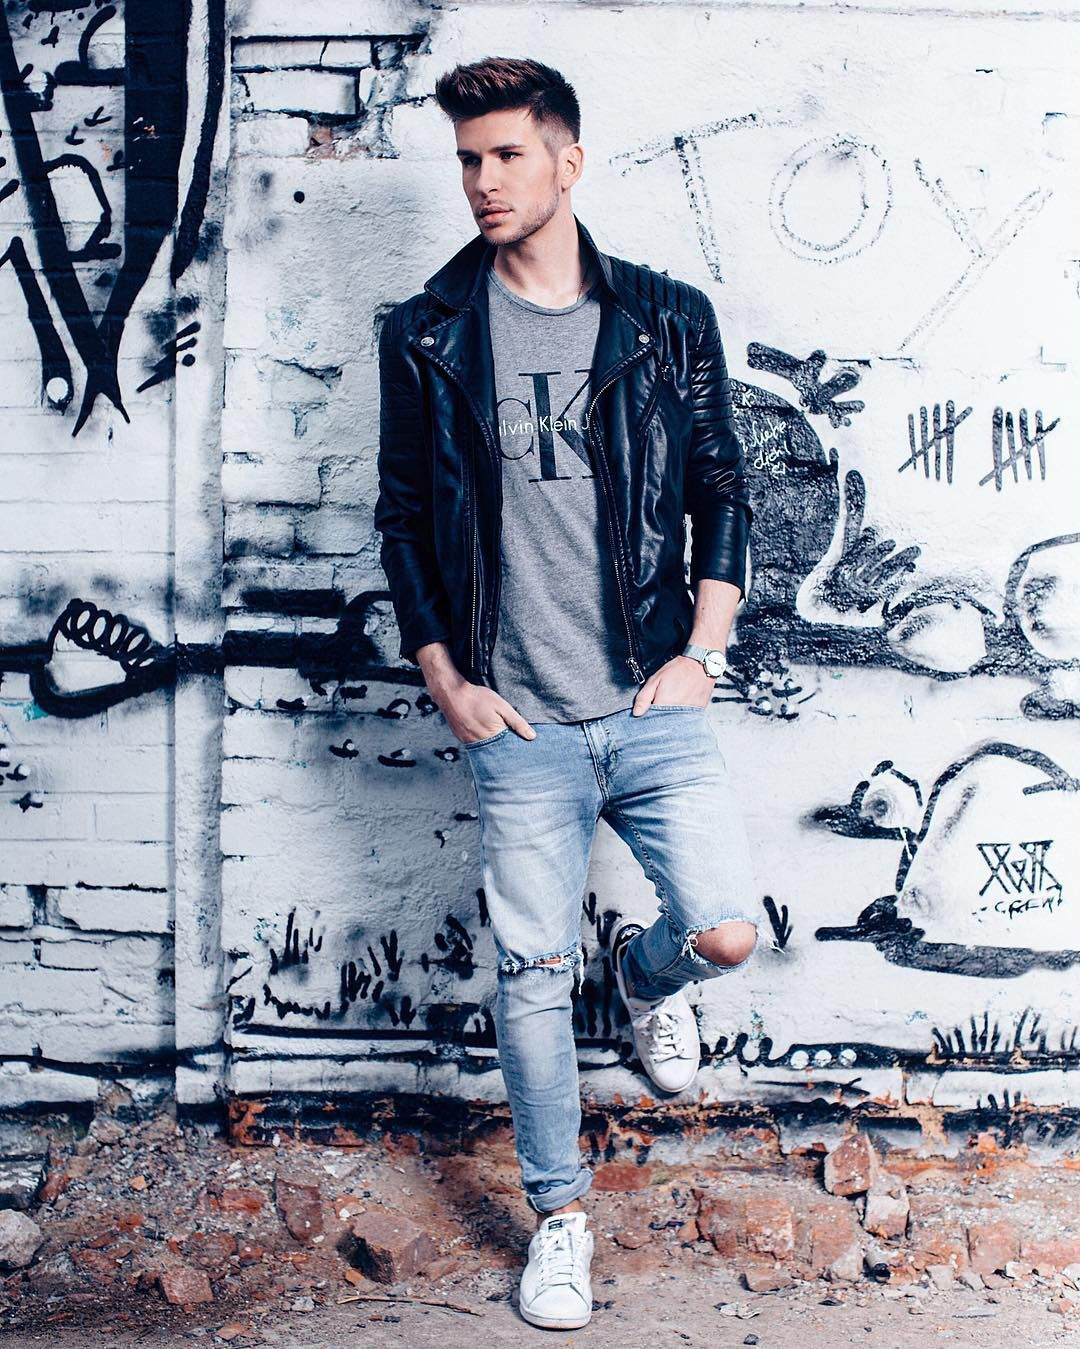 Rocking the leather jacket // Find similar pins at @damee1 // The easiest way to add an oomph of edginess? FOLLOW ➝ https://www.pinterest.com/damee1/hell-bent-for-leather/ // #leatheroutfit #leatherjacket #stylish  #menfashion #menstyle #guysinstyle #guyswithstyle #leather  #stylish menswear #menstyle #menfashion #casual #smart #classy #dapper #outfit #beTrendly #Fashion #Menswear #Leather #Biker #Hipster